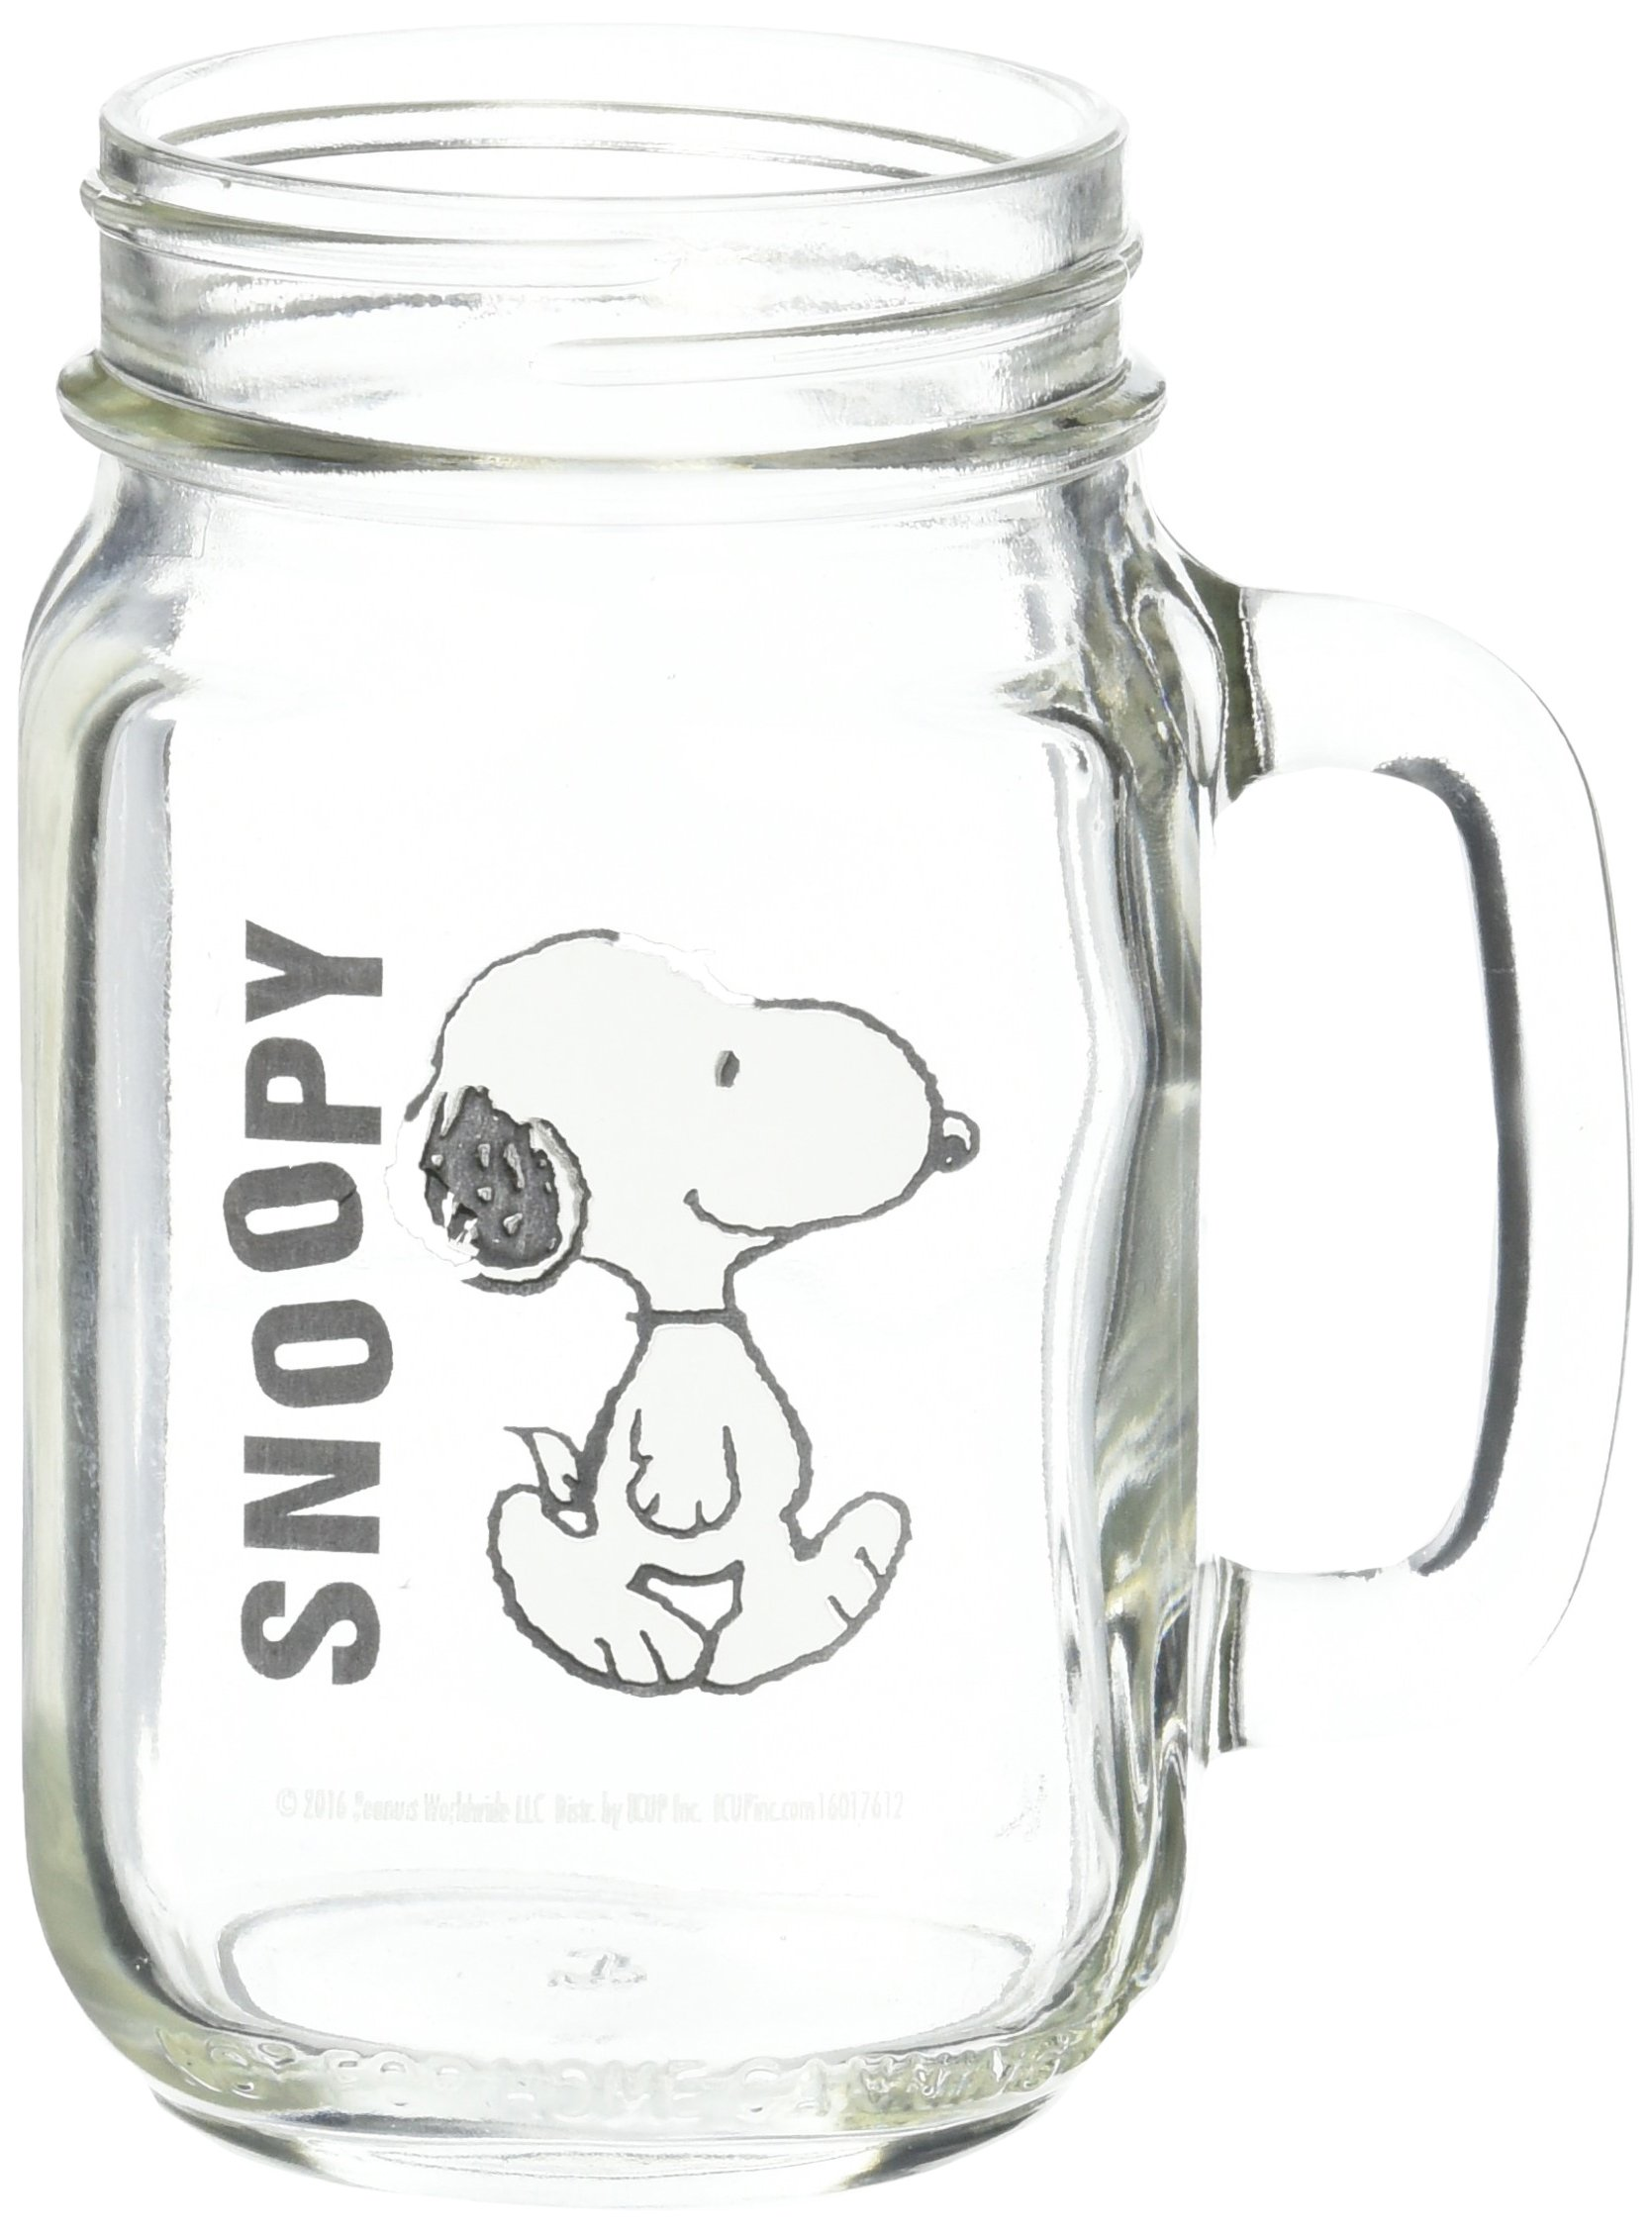 ICUP Peanuts Snoopy Walking Handled Glass Mason Jar, Clear by ICUP (Image #1)